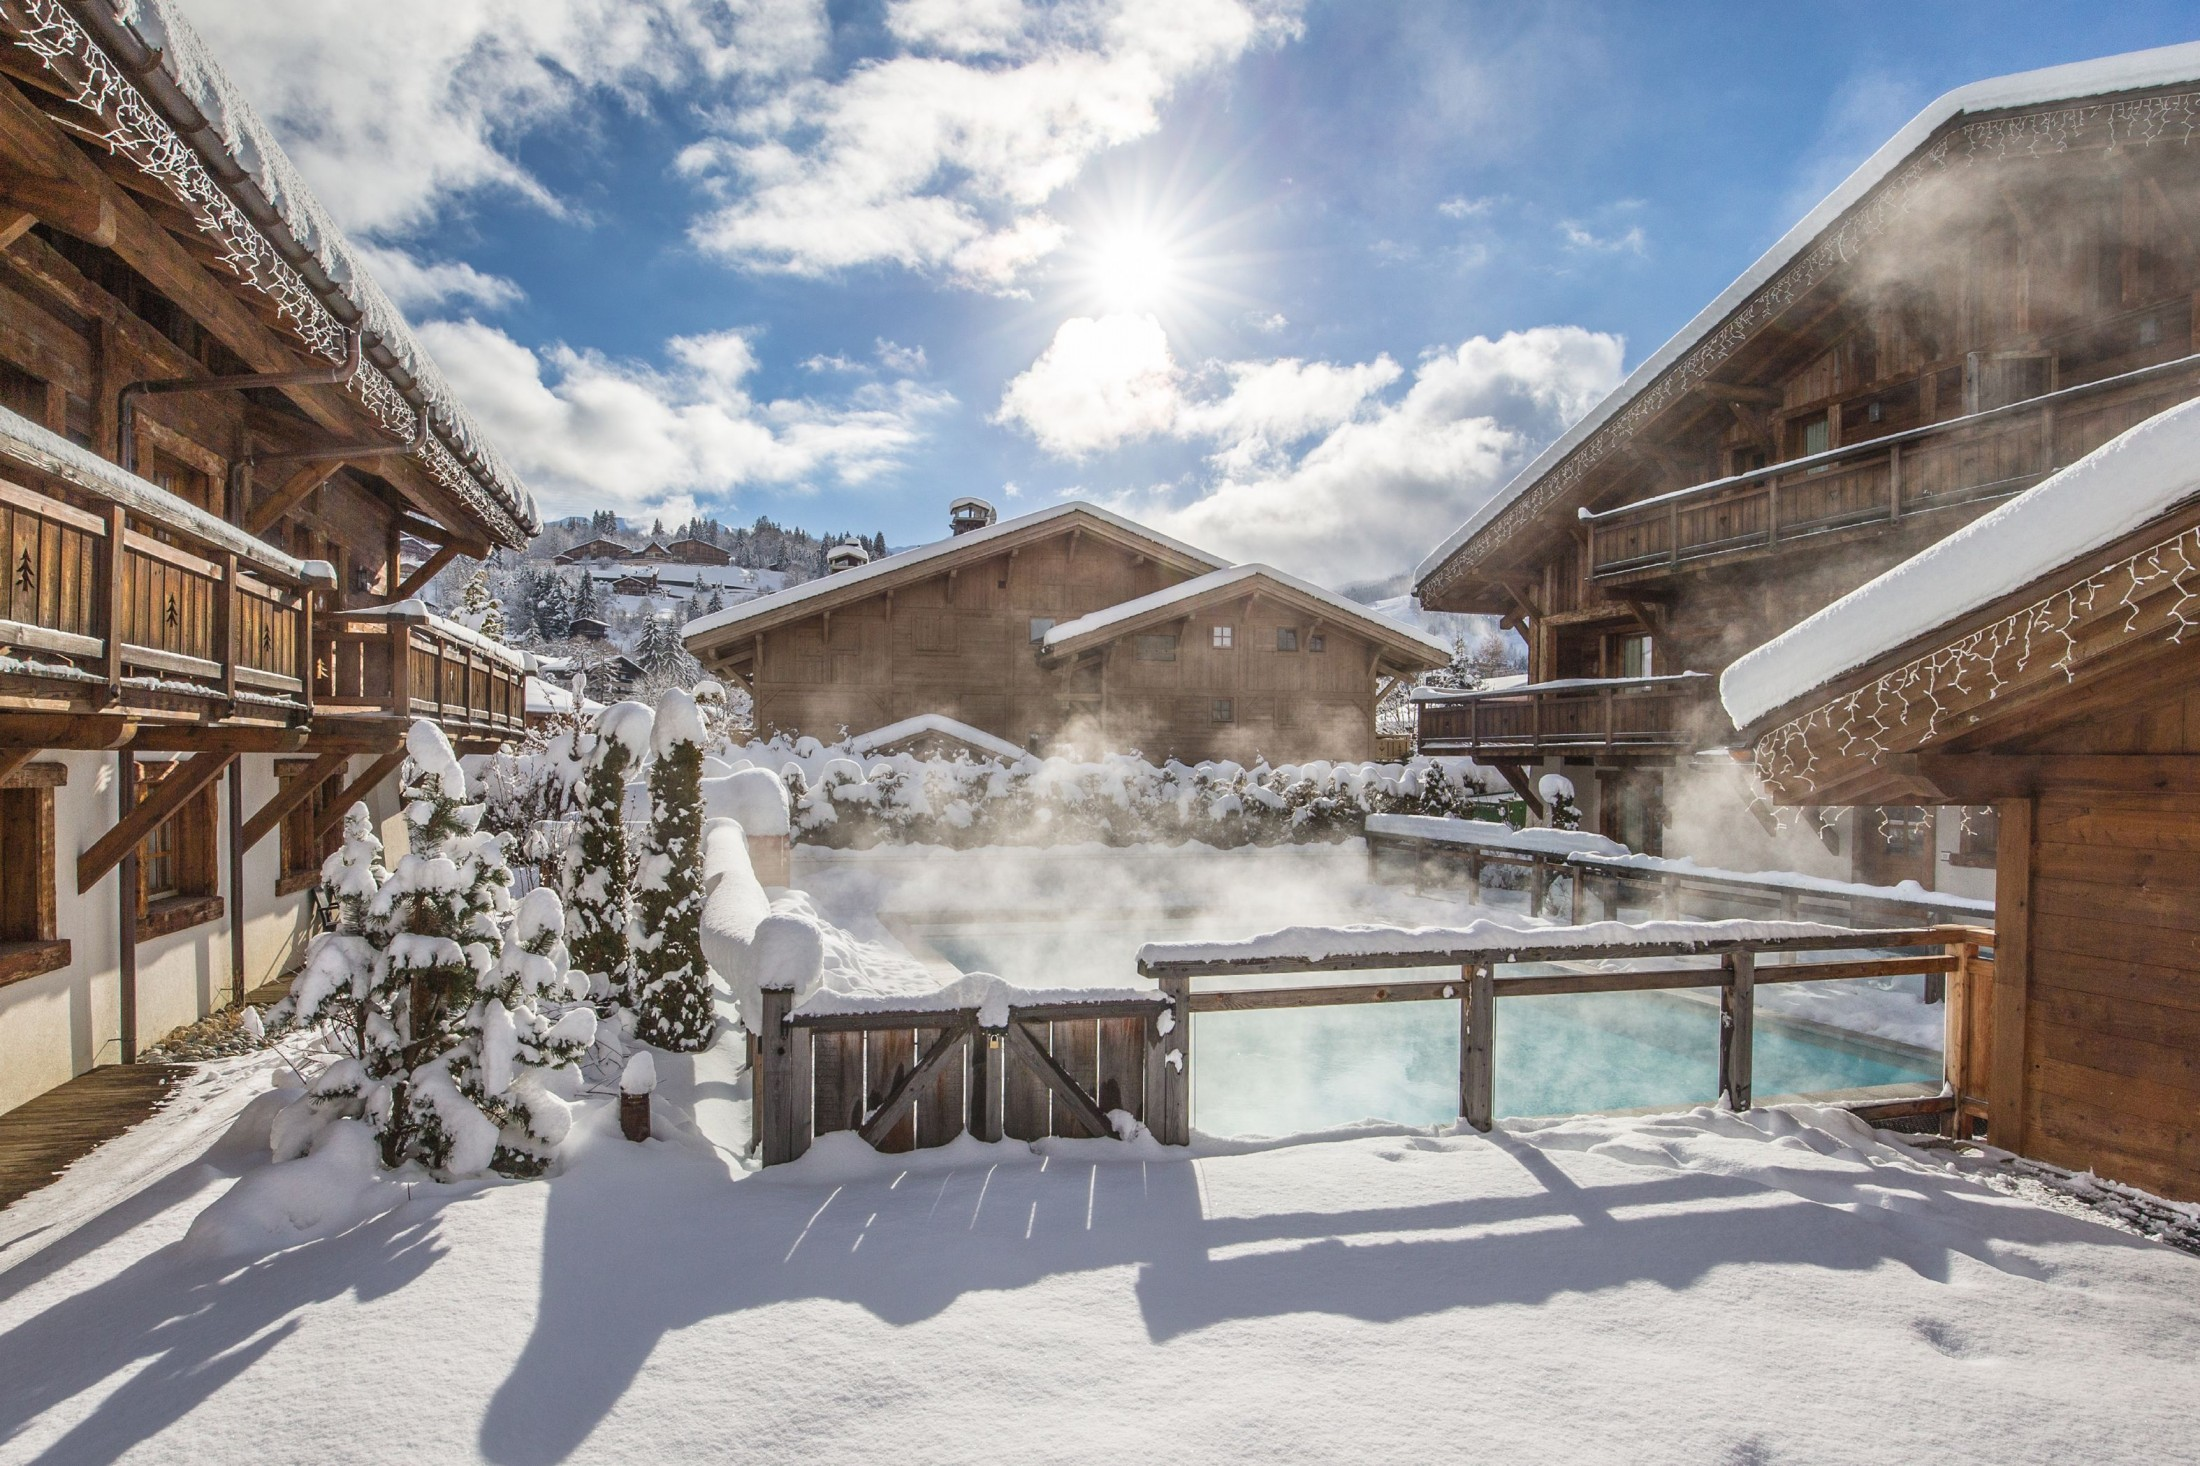 Le Refuge Megeve Architecte hotel les loges blanches in megève - book a luxury hotel in